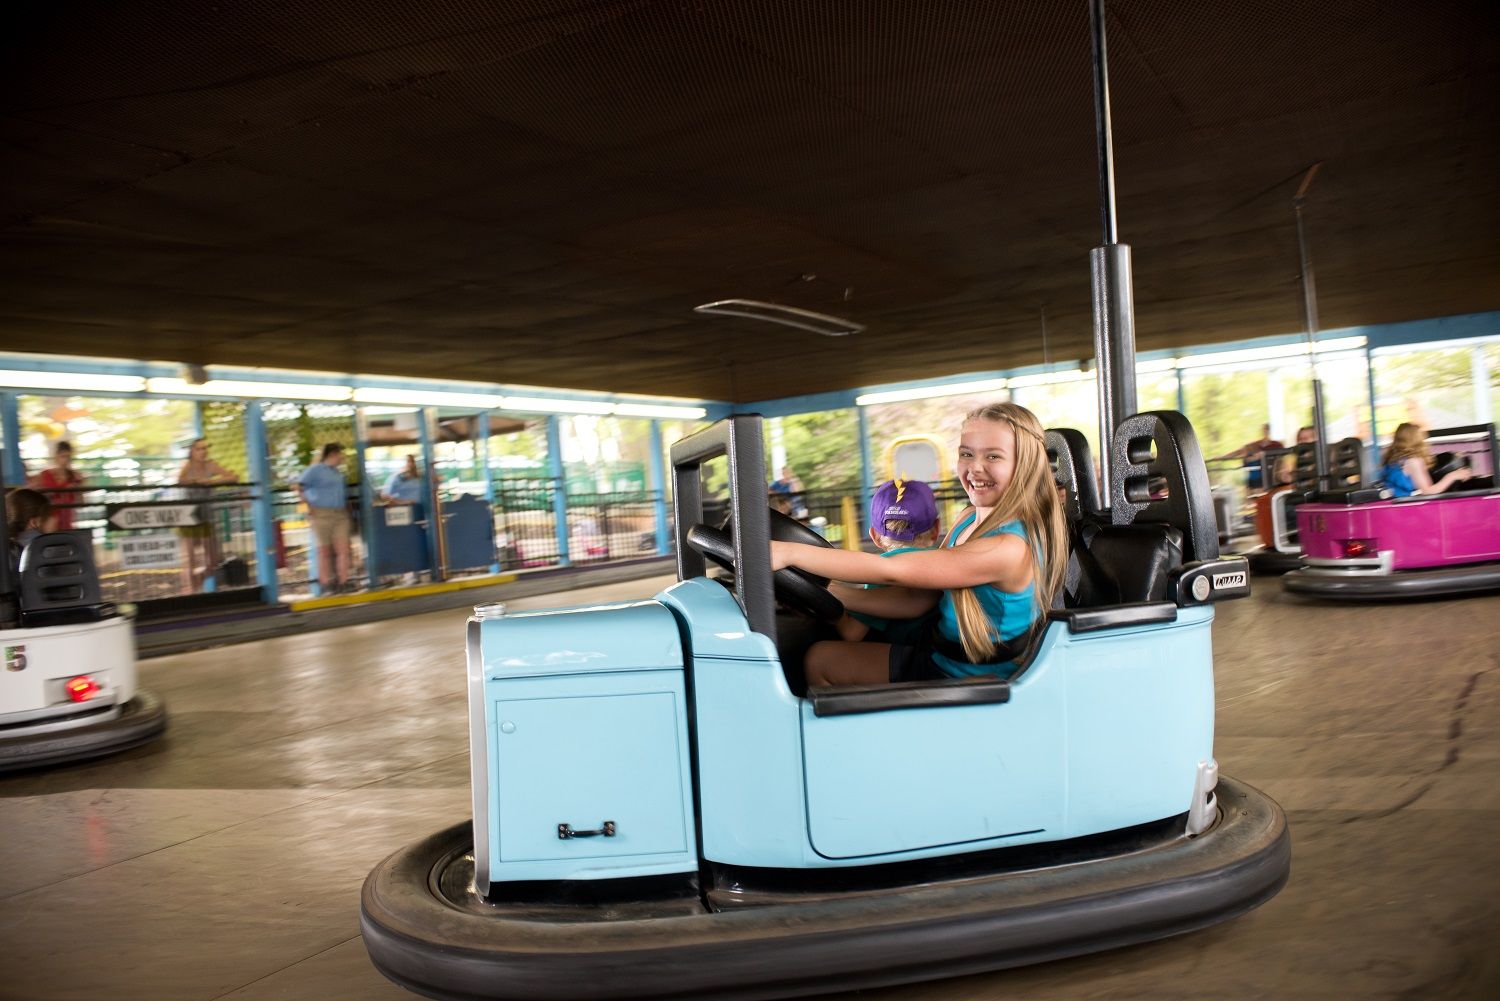 Girl driving bumper cars ride vehicle and smiling.